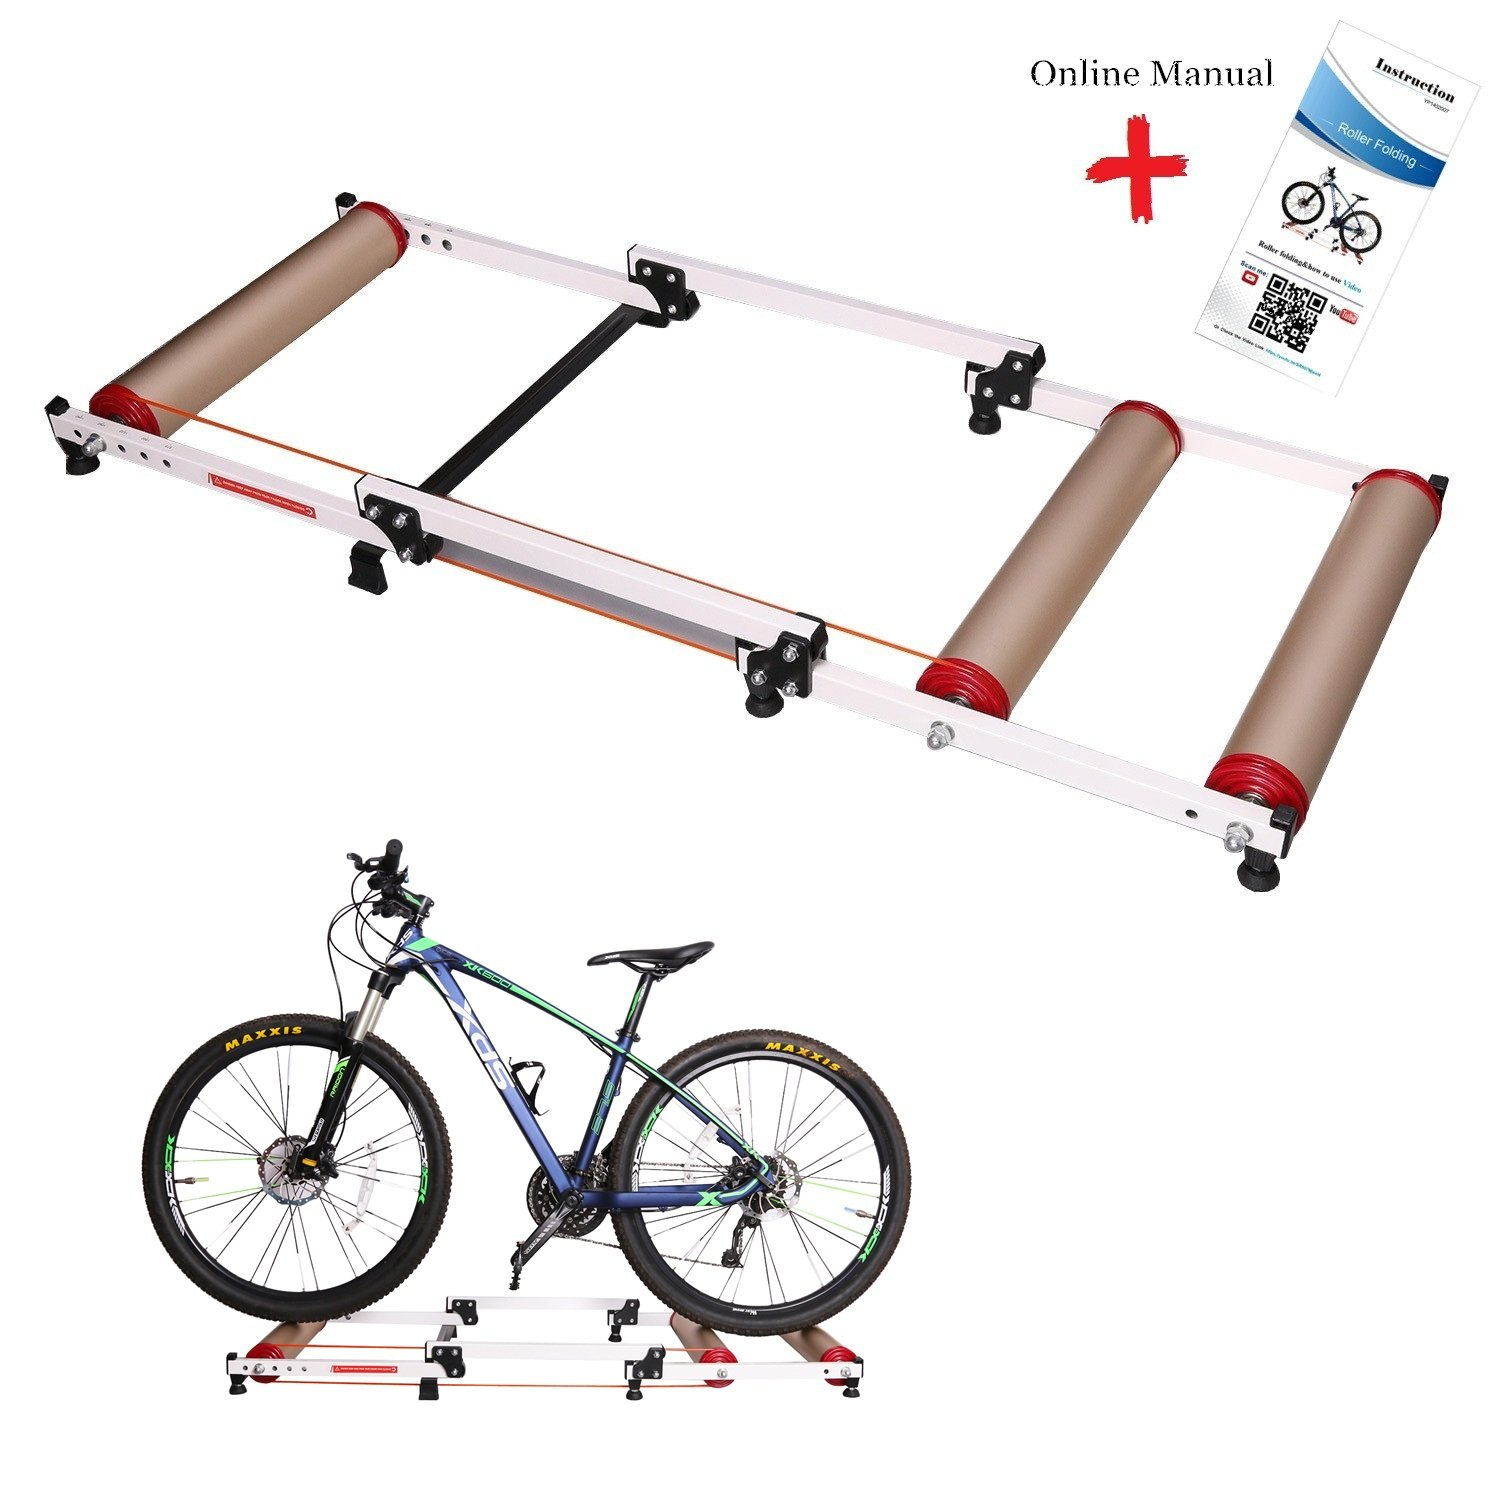 West Biking Foldable Indoor Bike Rollers for Exercise, Bike Resistance Trainers Parabolic roller drum profile